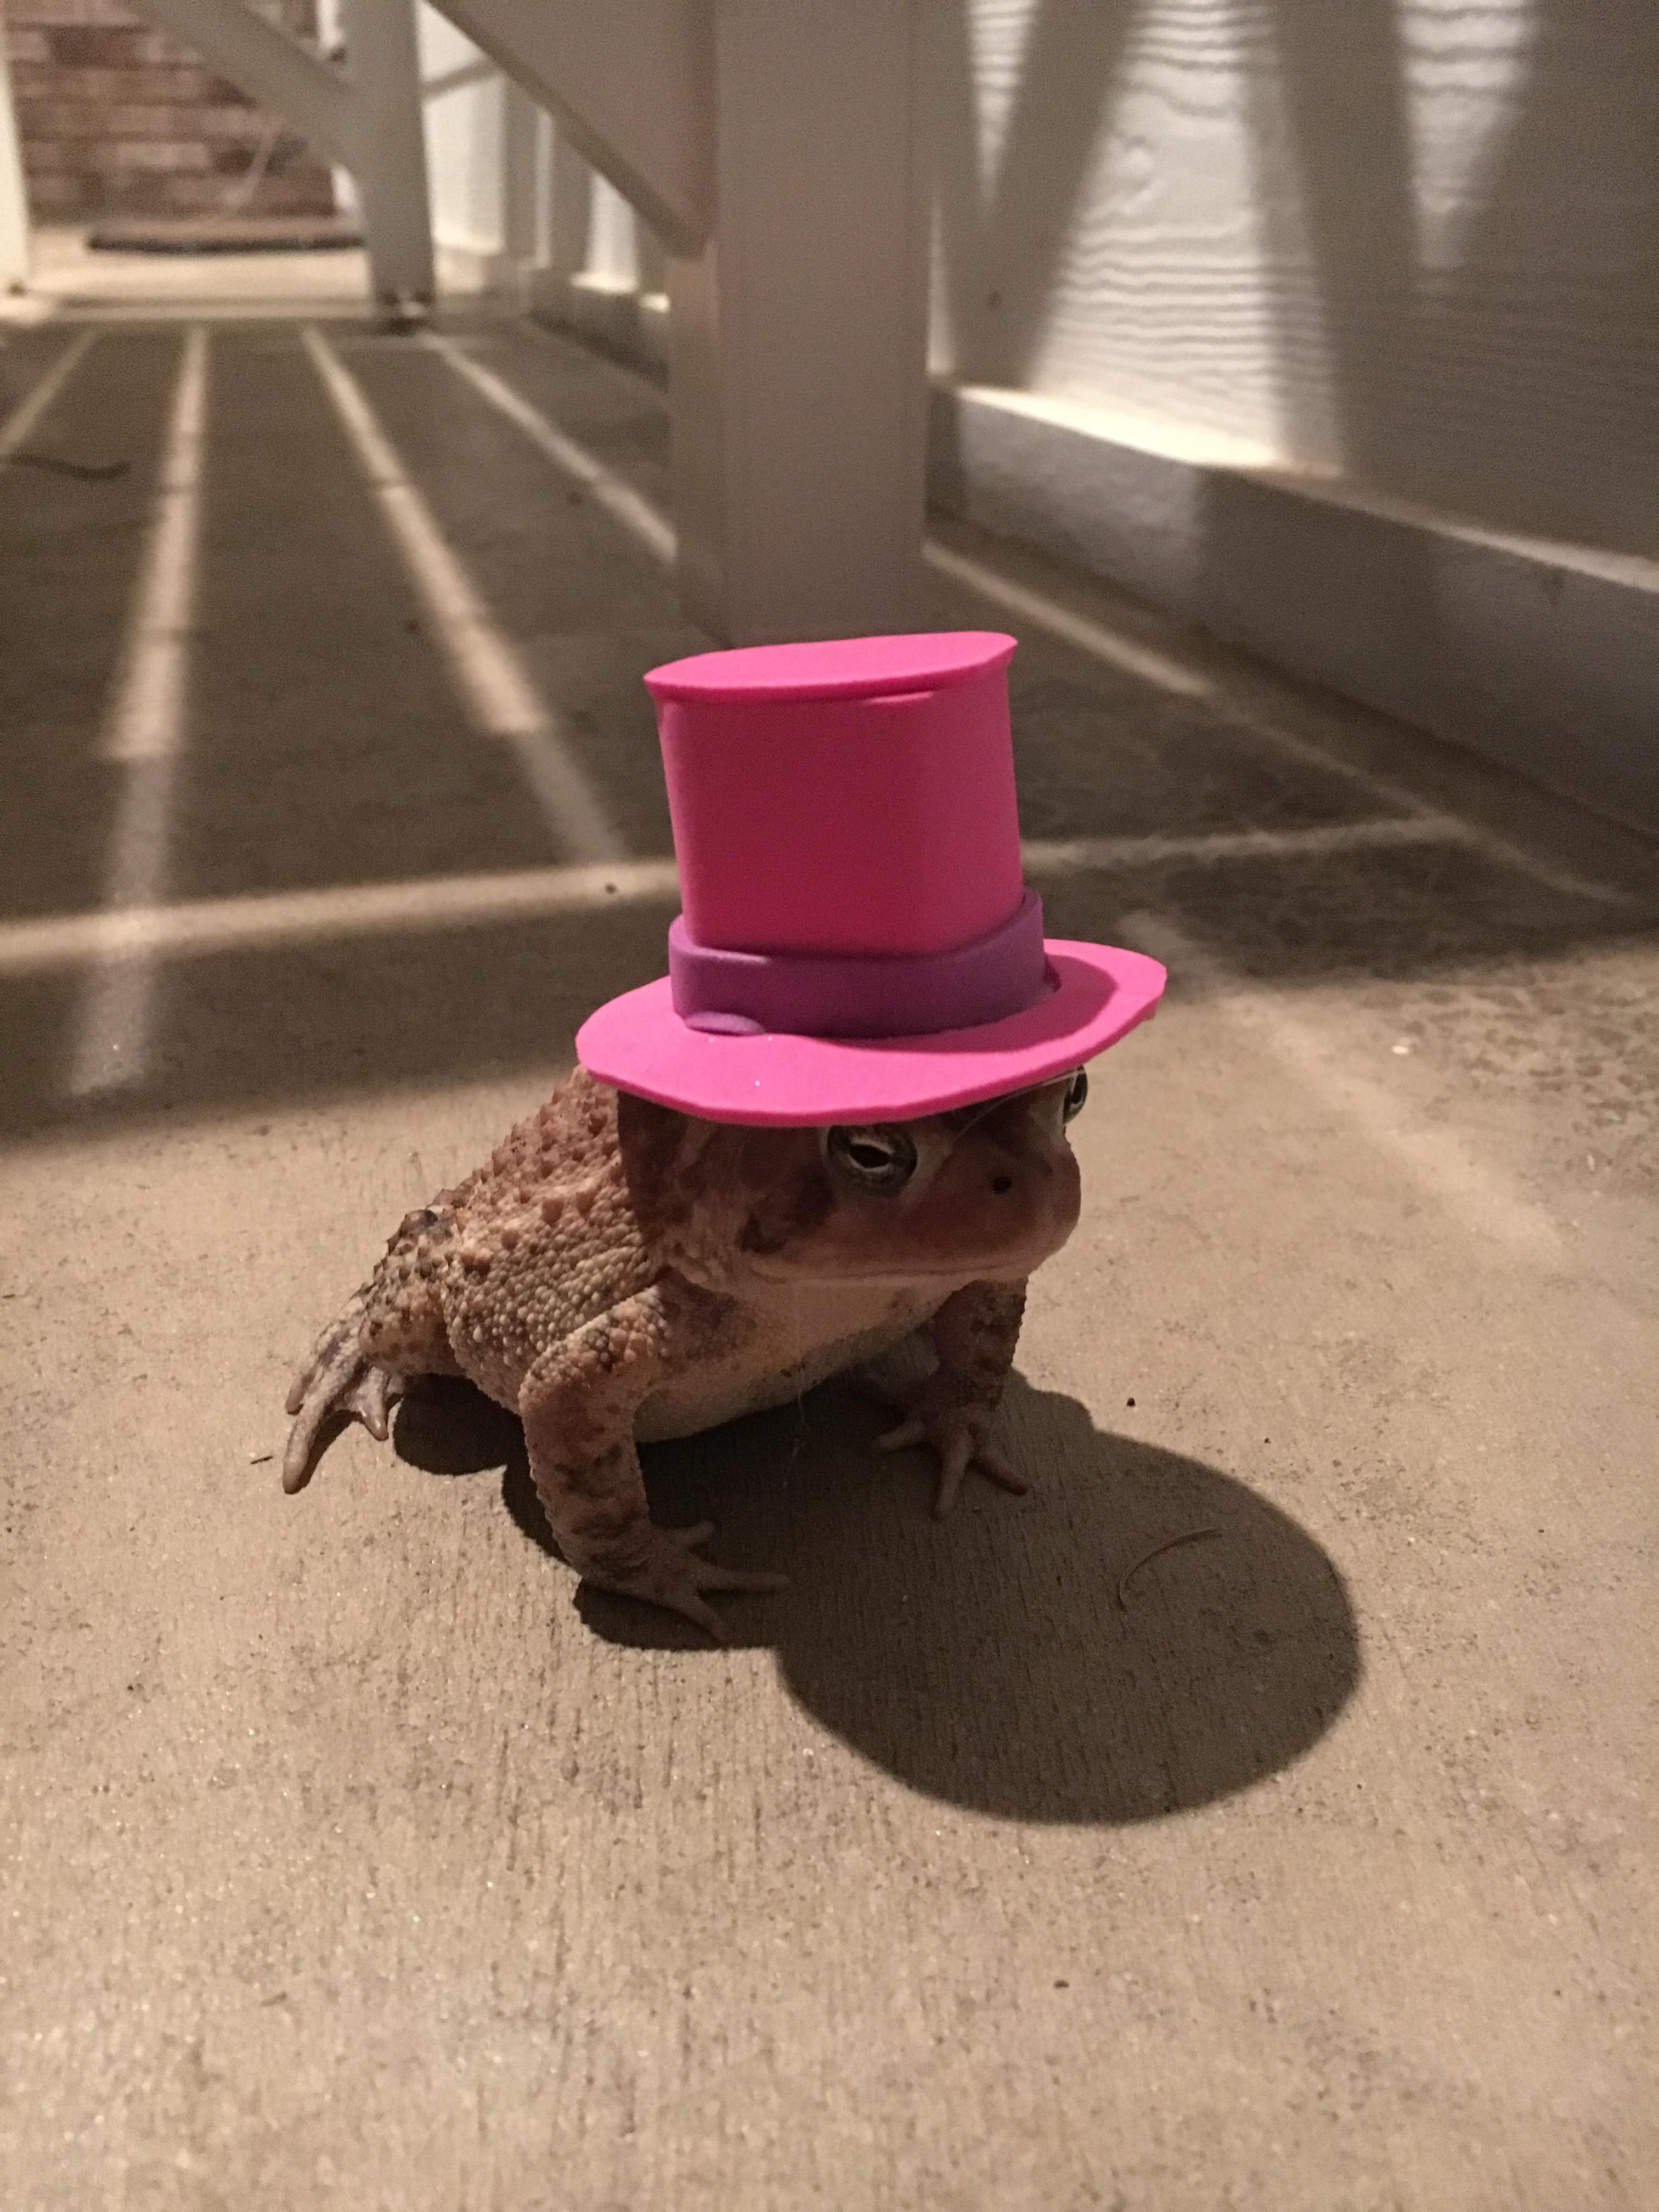 Ta-da! A dapper Mr. Toad.